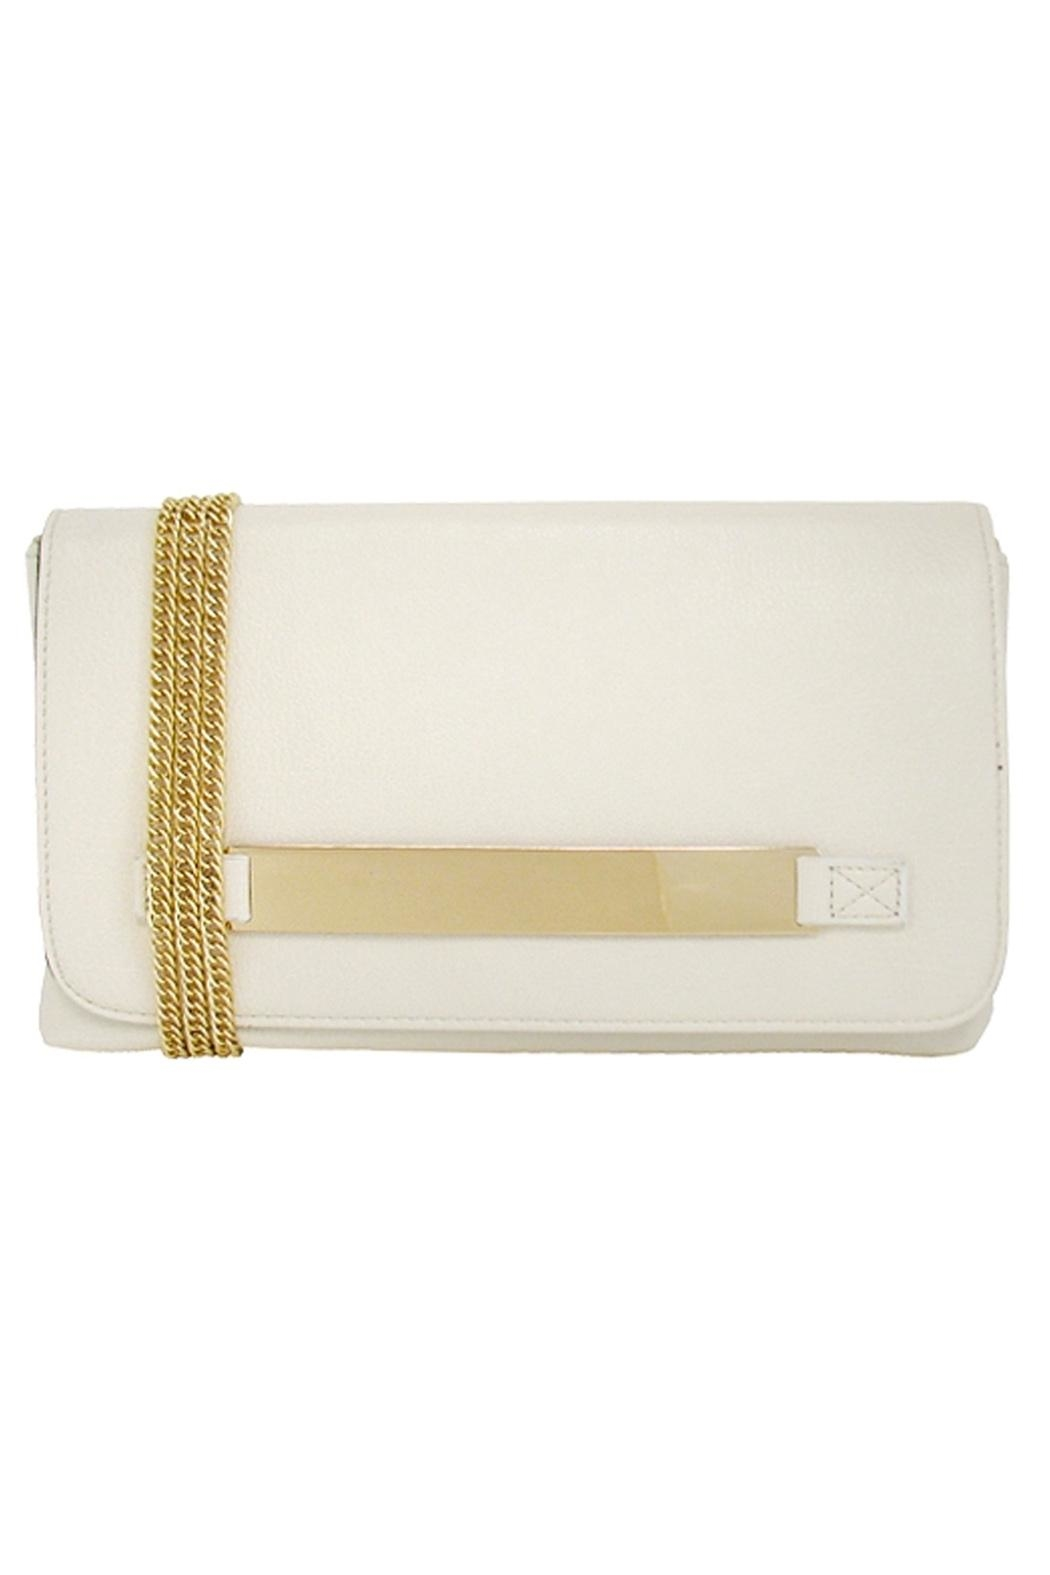 Wild Lilies Jewelry  Ivory Envelope Clutch - Main Image